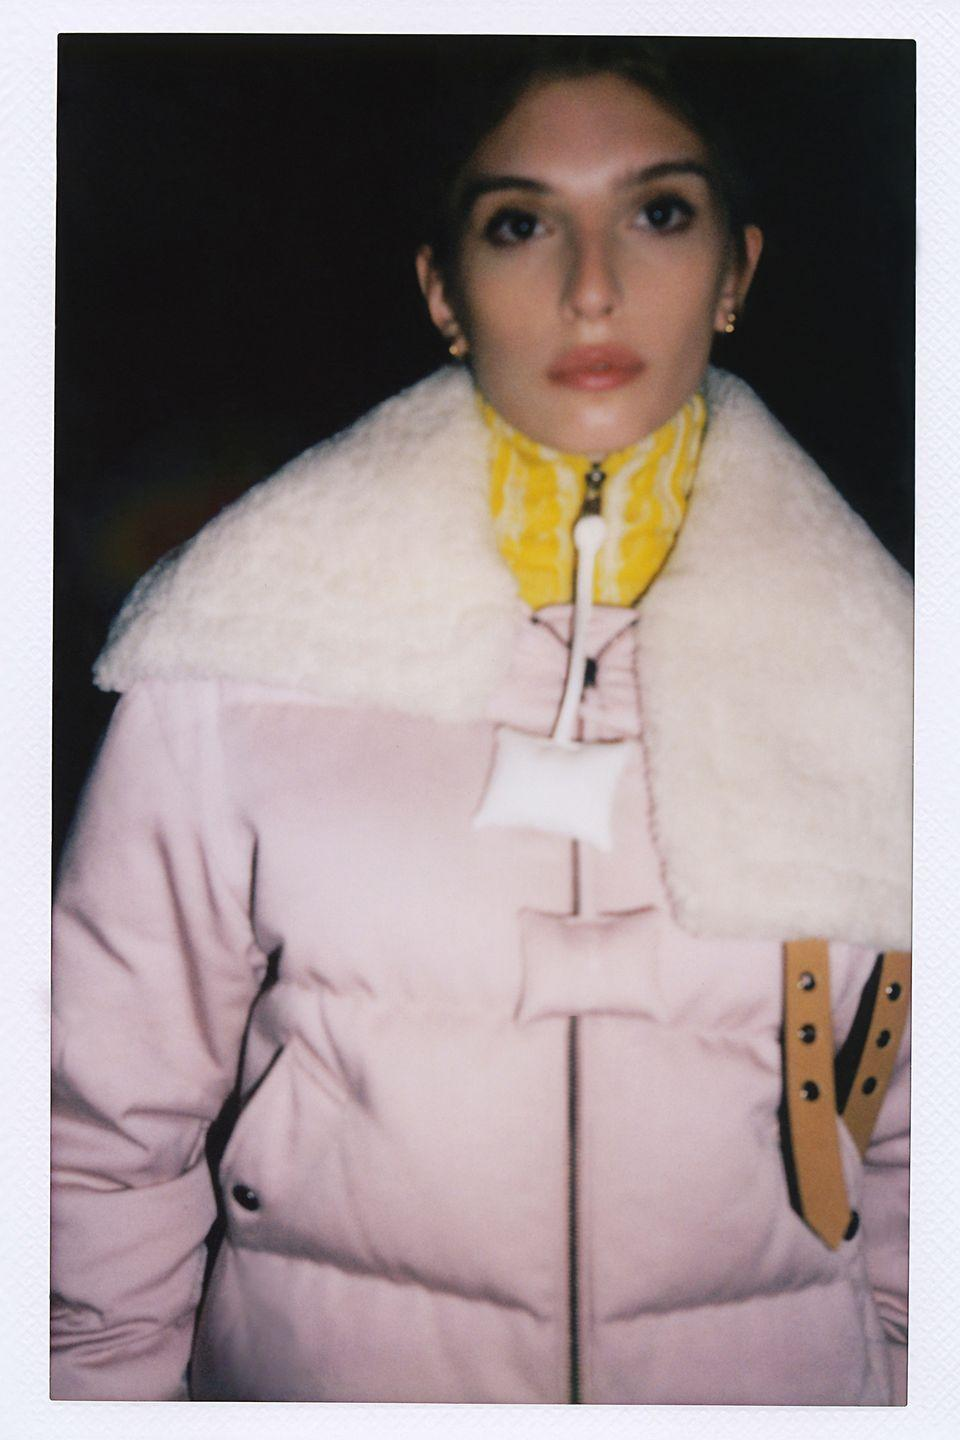 Photo credit: COURTESY MONCLER PRESS OFFICE